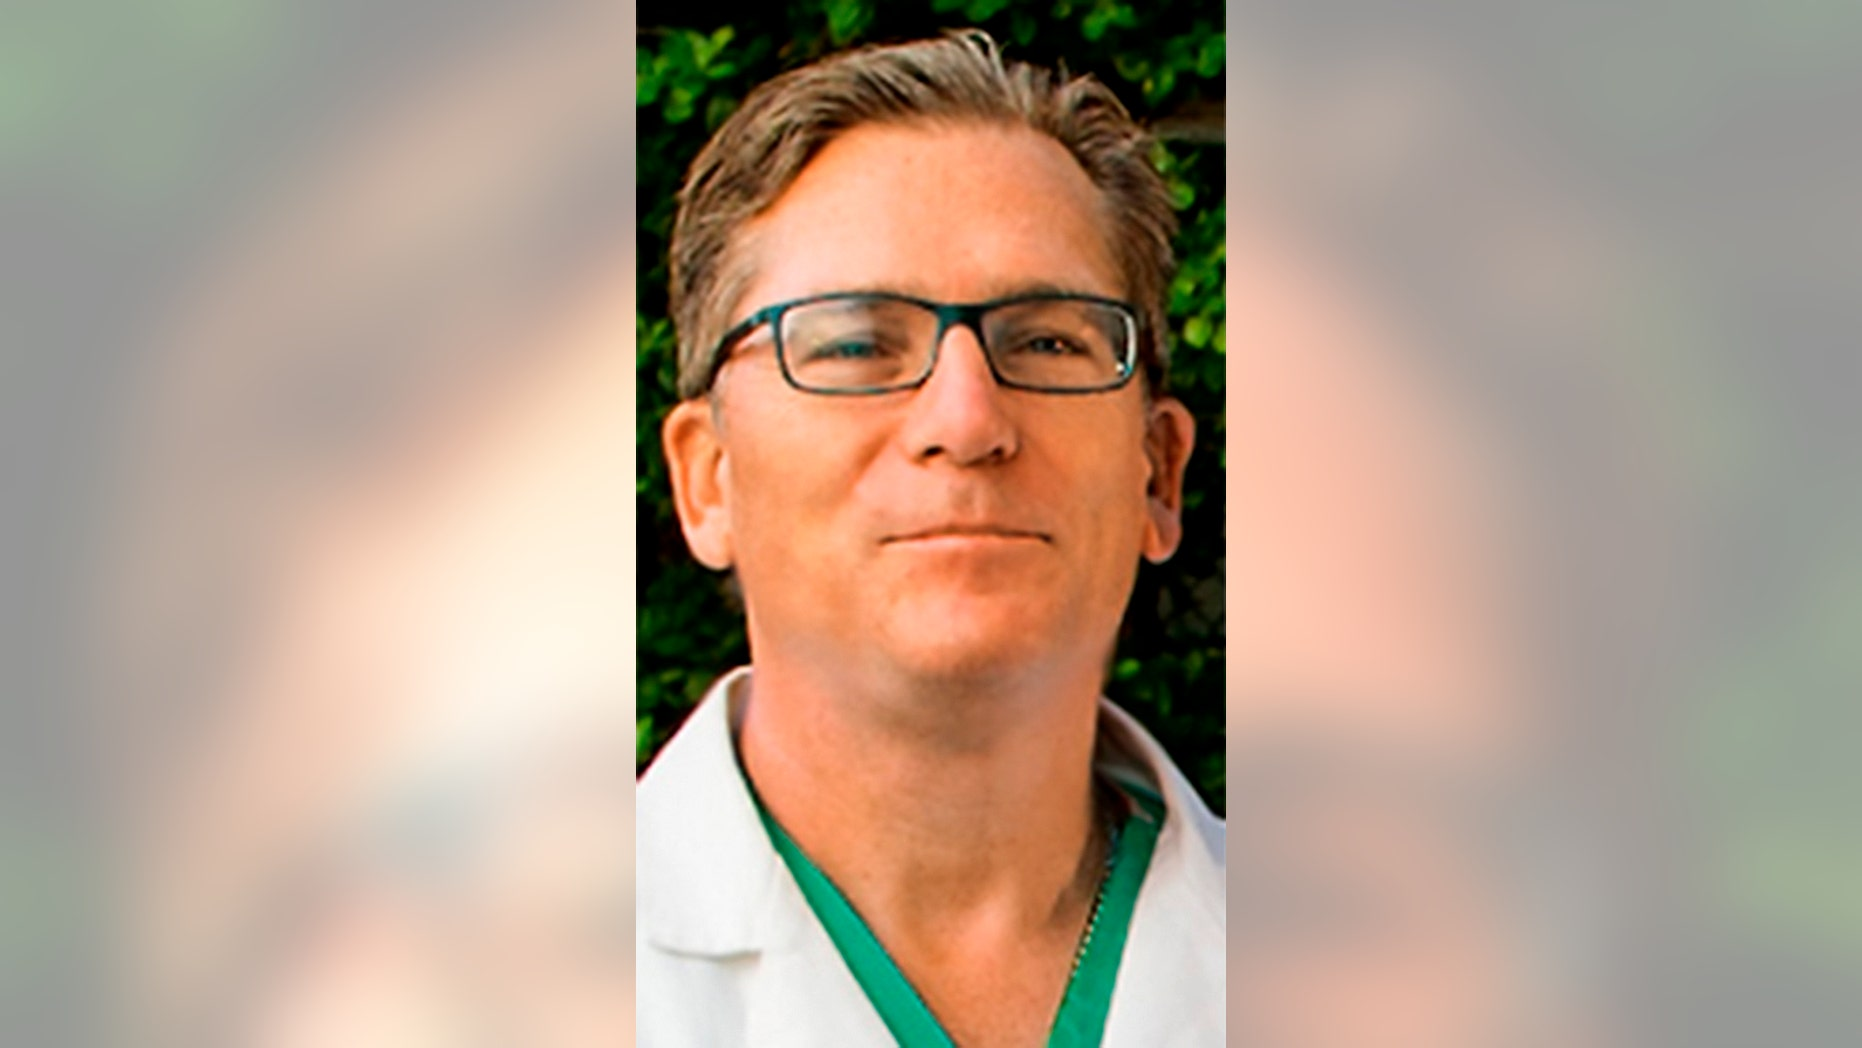 Dr. Dean Lorich was sued by a former football player who claimed he botched his surgery which ended his career.